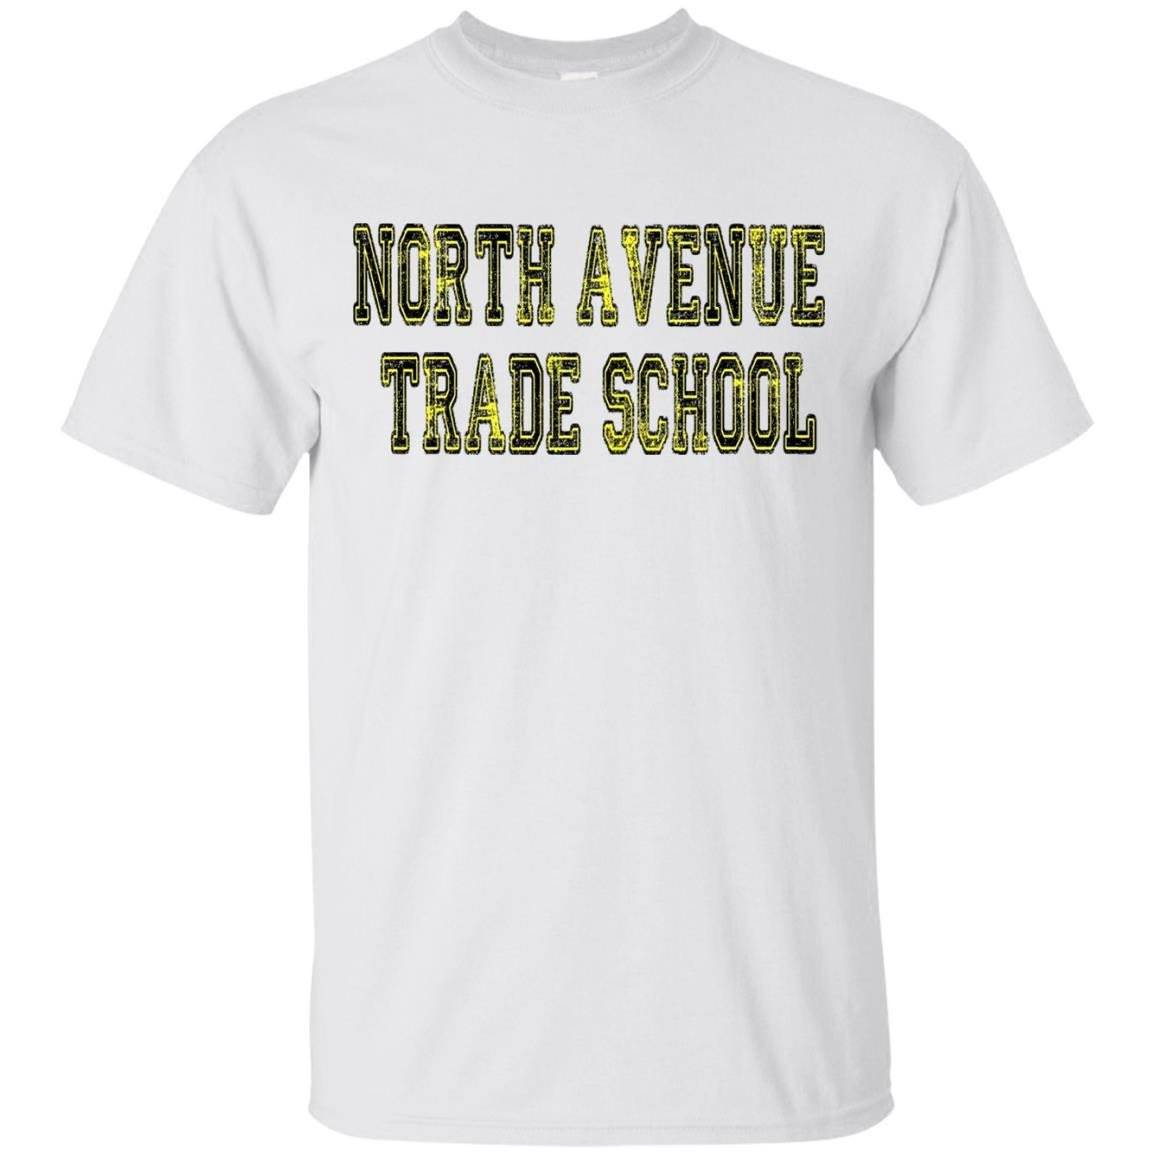 North Avenue Trade School Shirt – T-Shirt